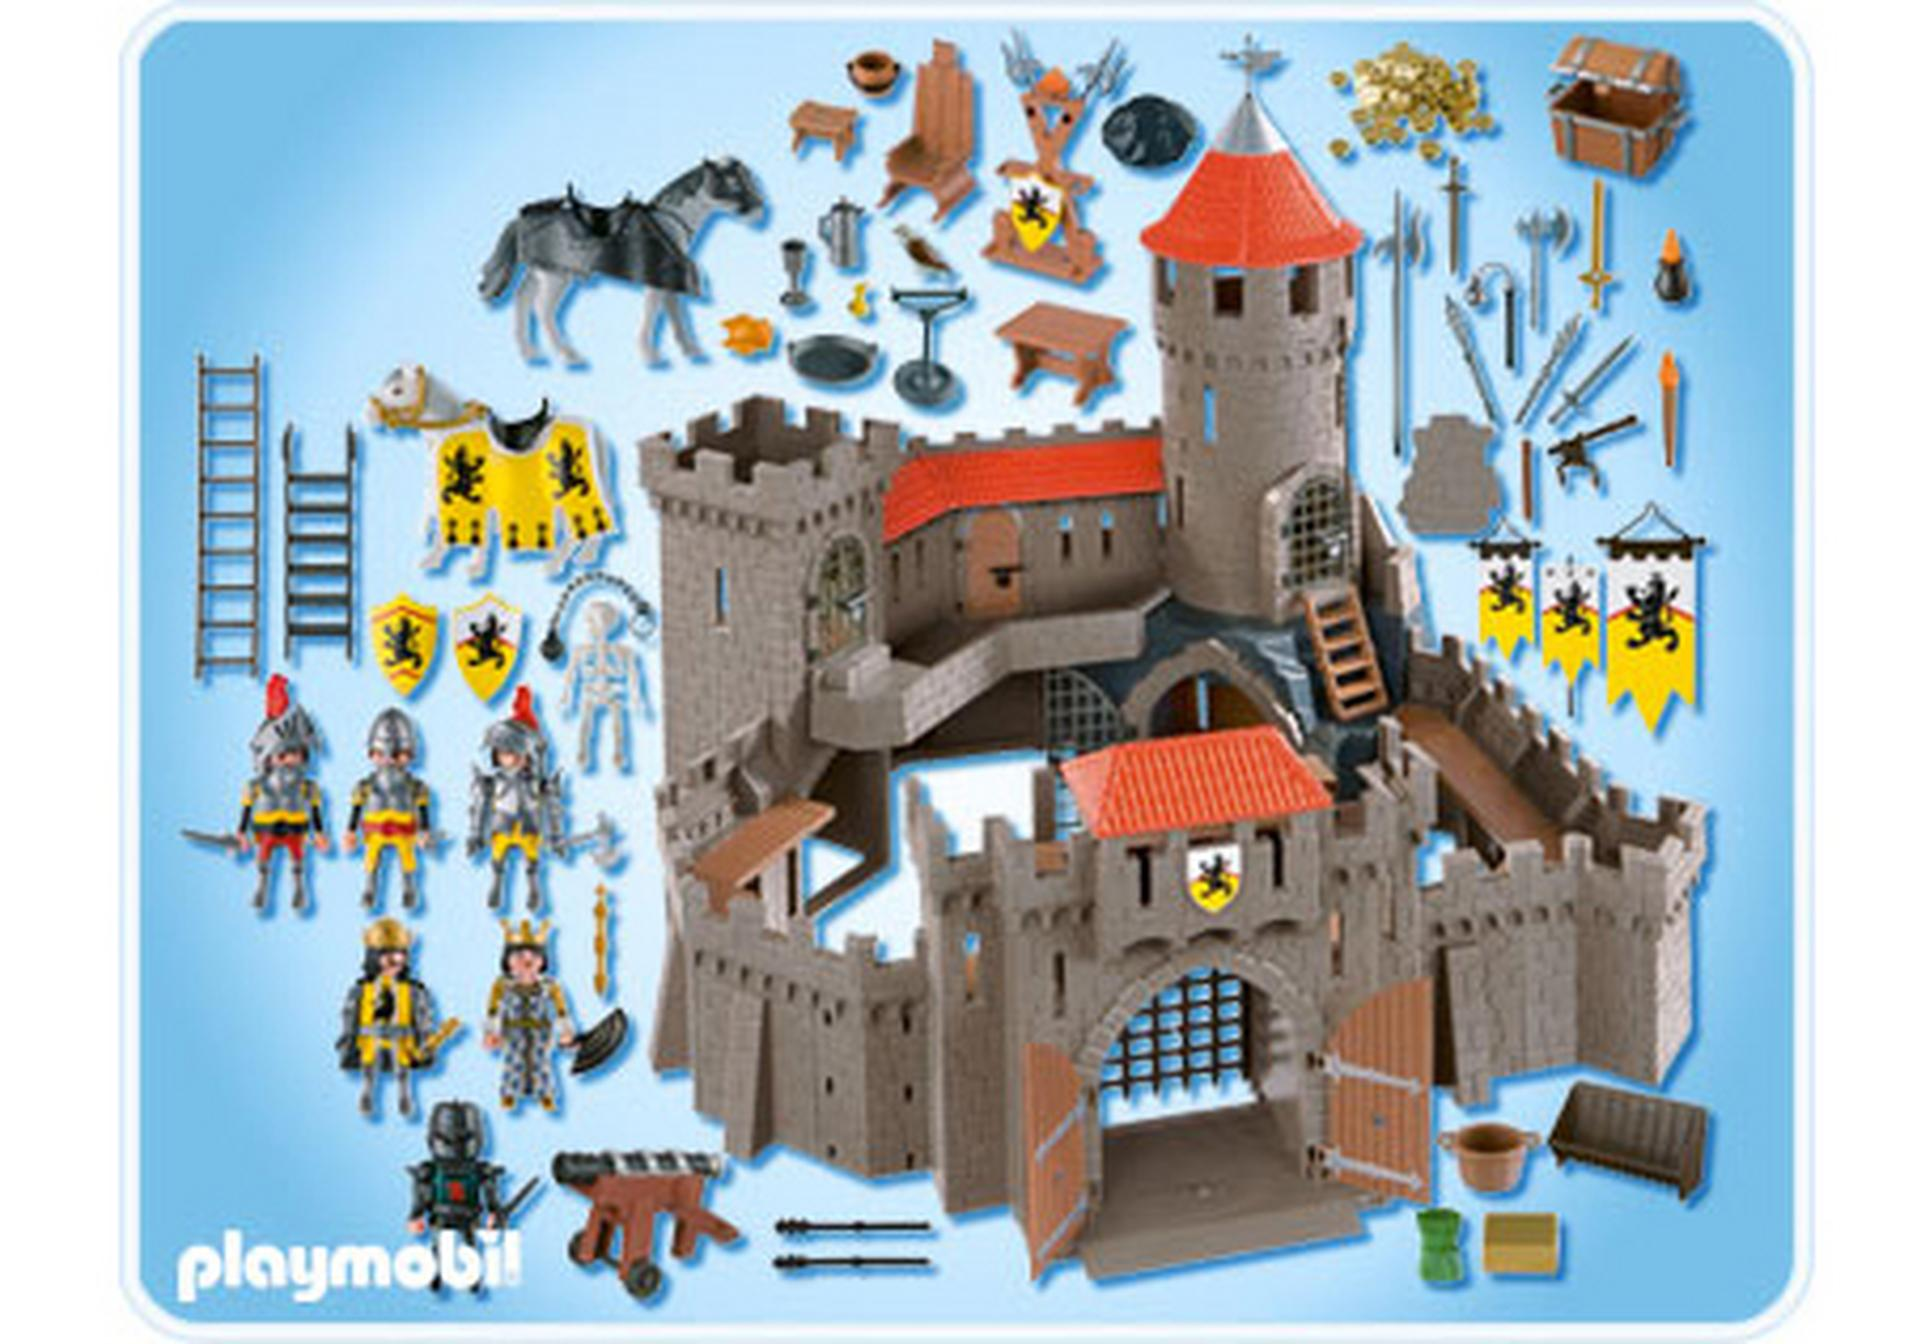 ch teau fort des chevaliers du lion 4865 a playmobil